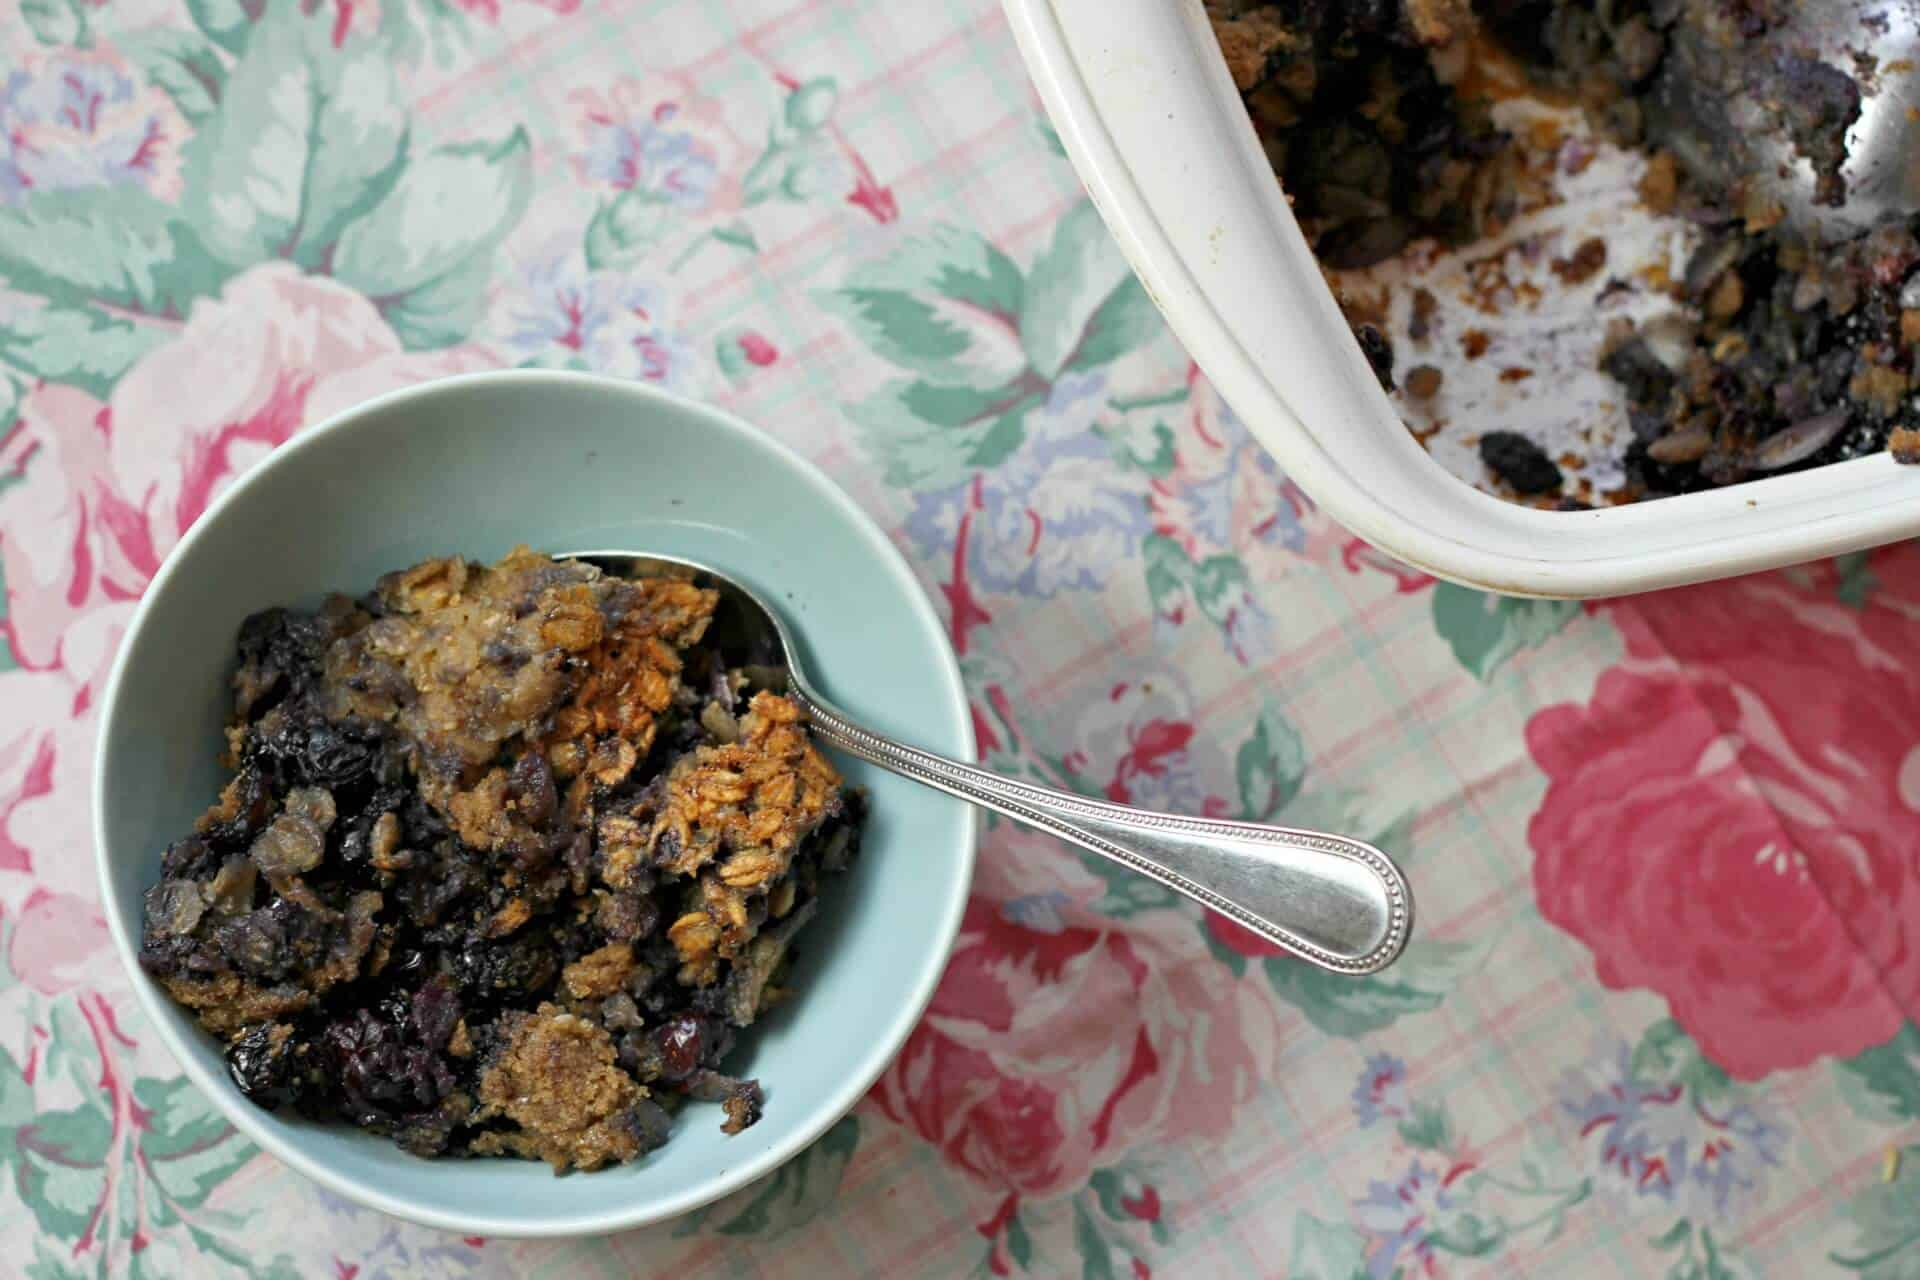 Blueberry pie baked oatmeal 2 S